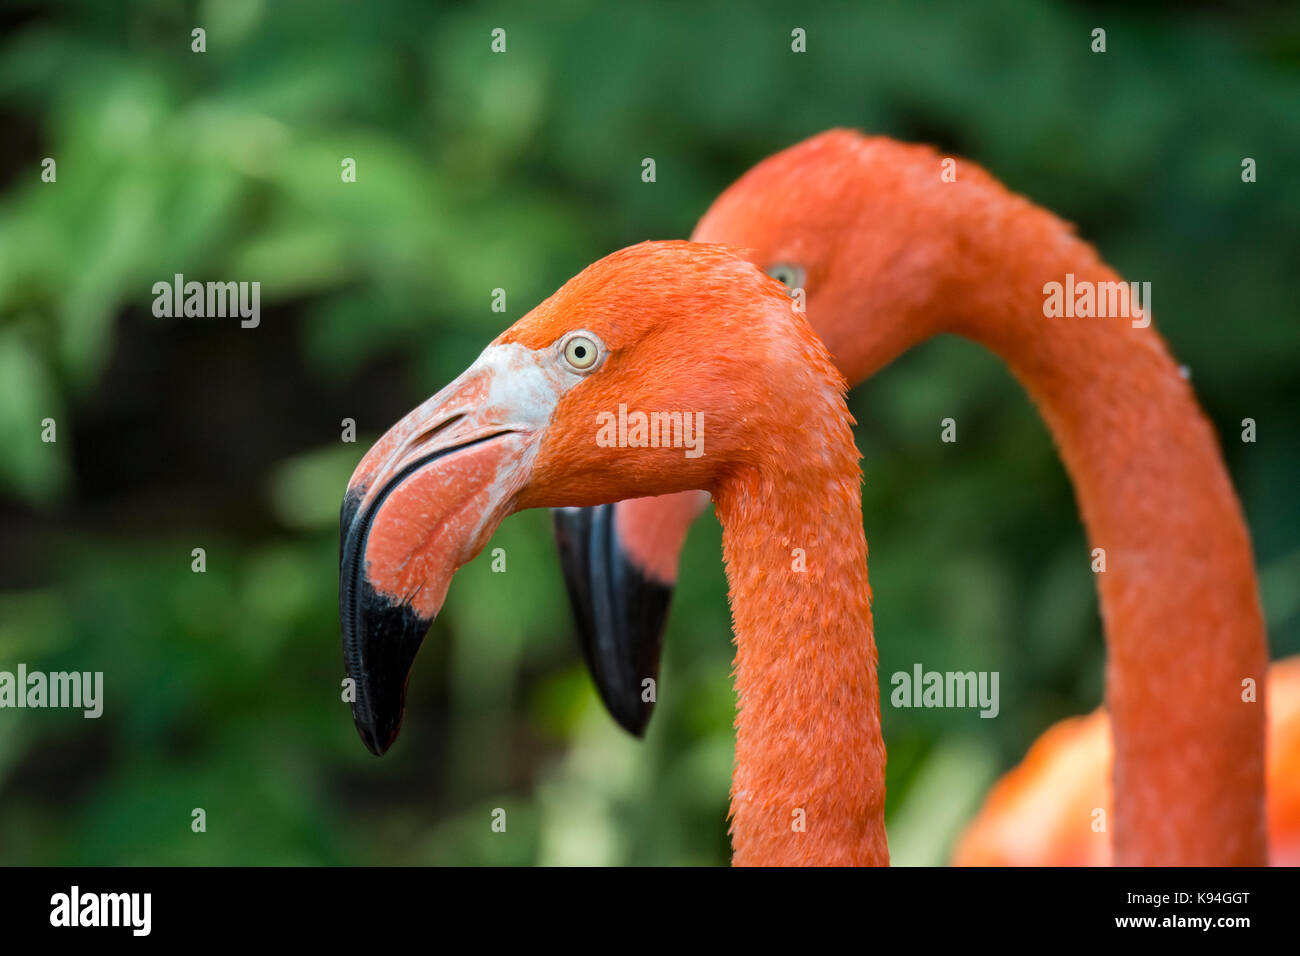 American flamingo / Caribbean flamingo (Phoenicopterus ruber) close up of head and beak - Stock Image